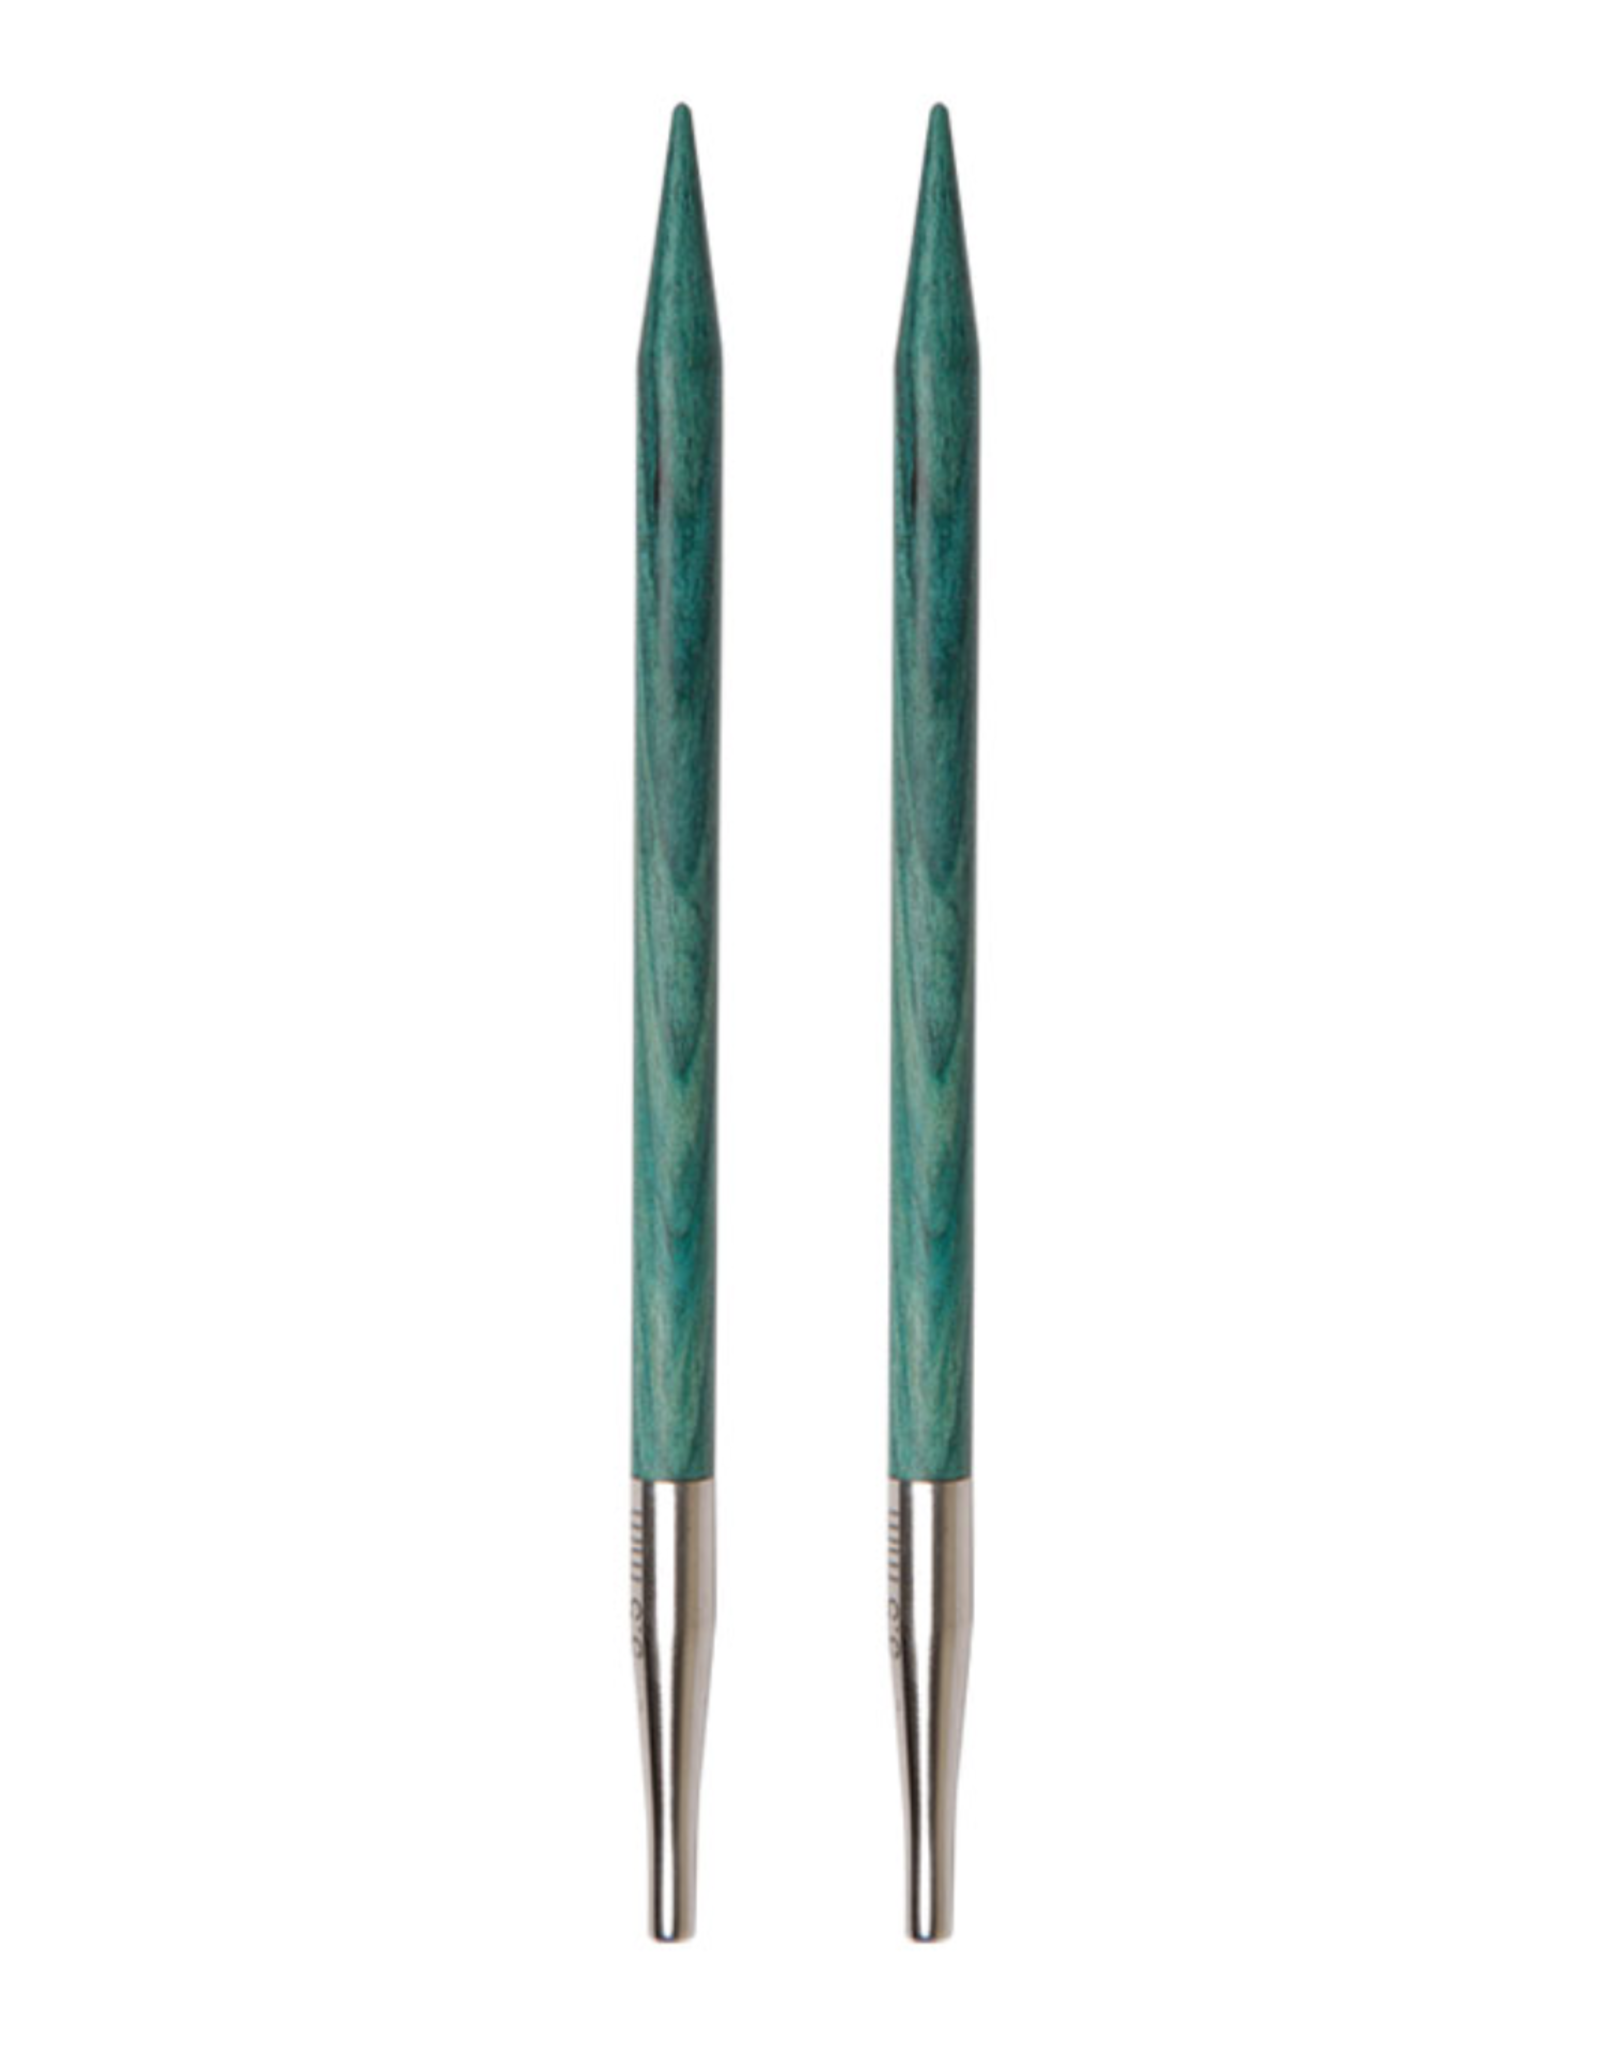 "Dreamz size US 4 interchangeable needle tips for 24"" cords and up."